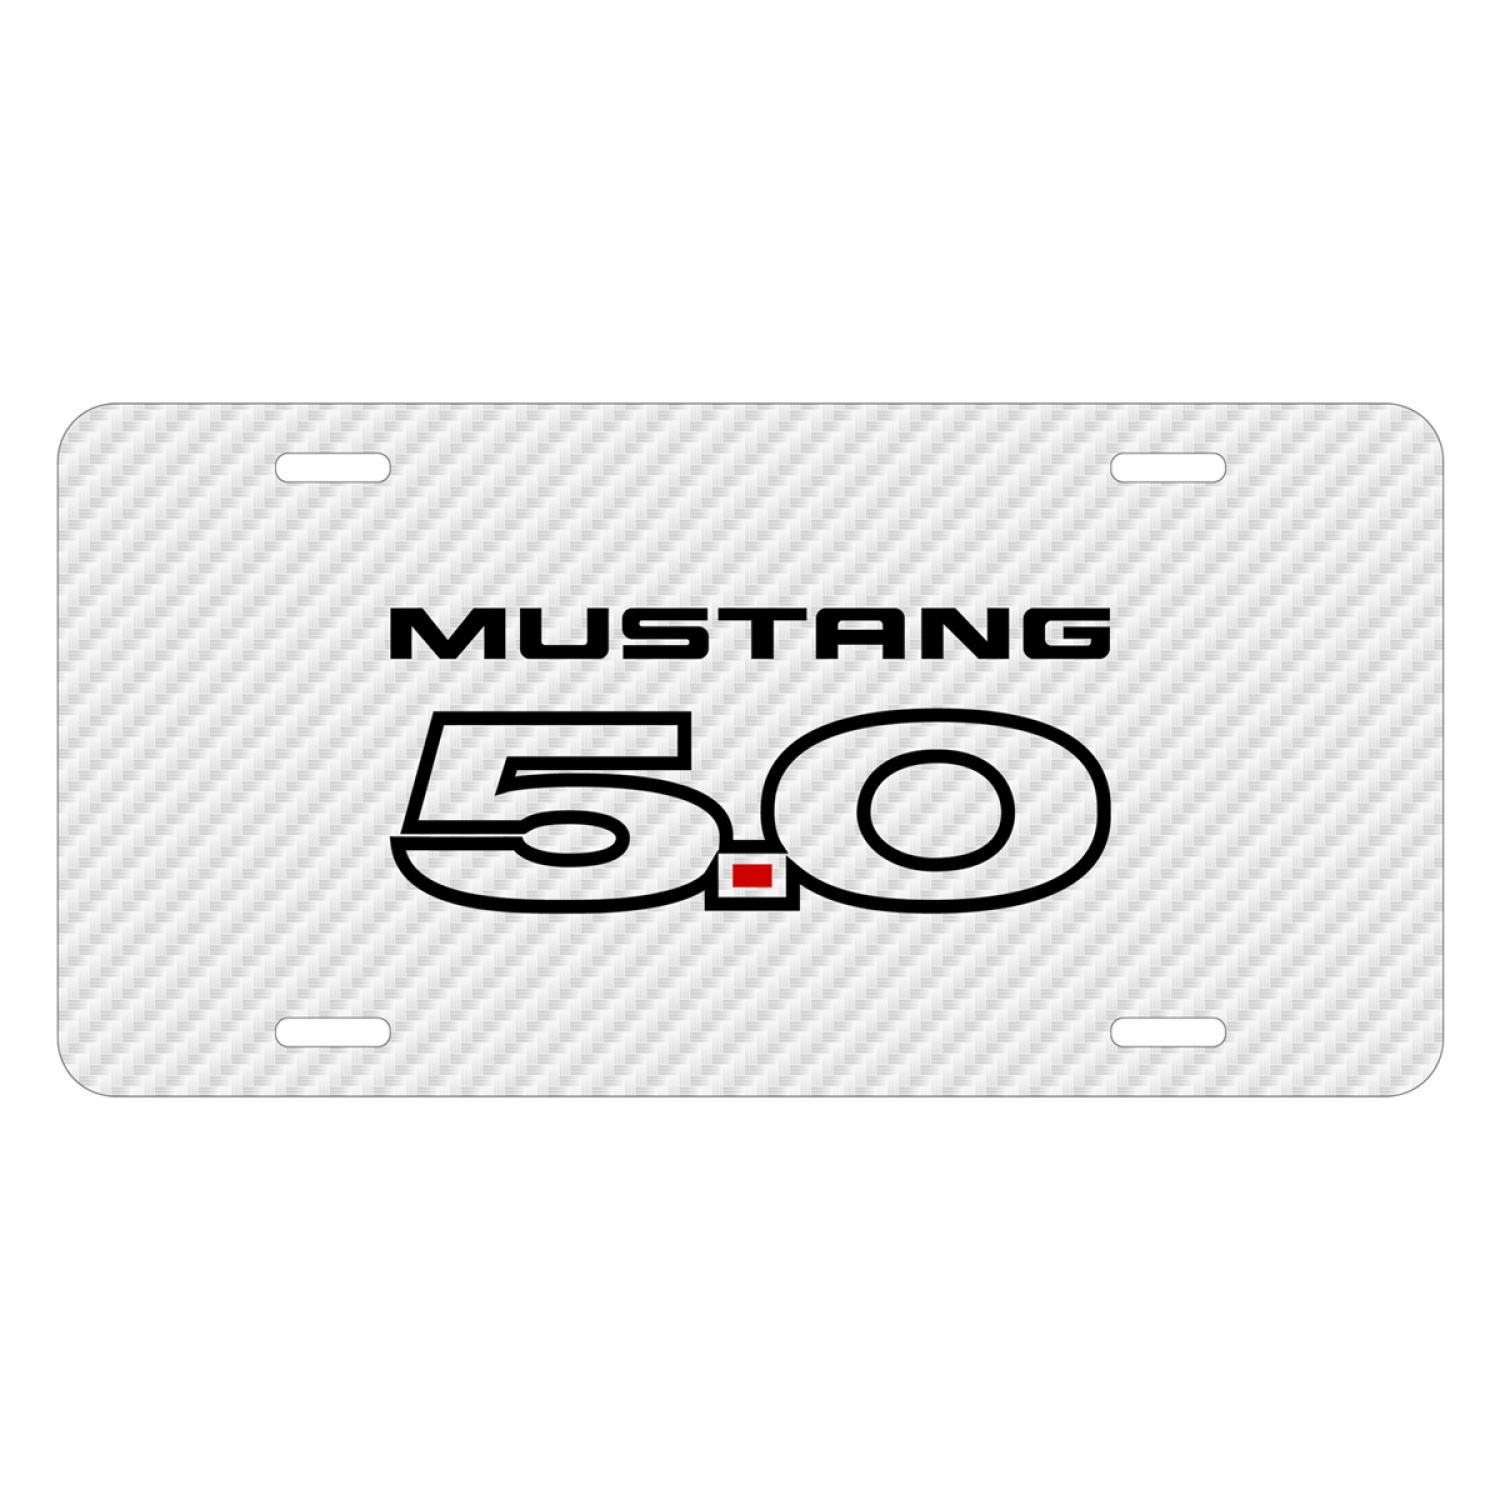 Ford Mustang 5.0 White Carbon Fiber Texture Graphic UV Metal License Plate